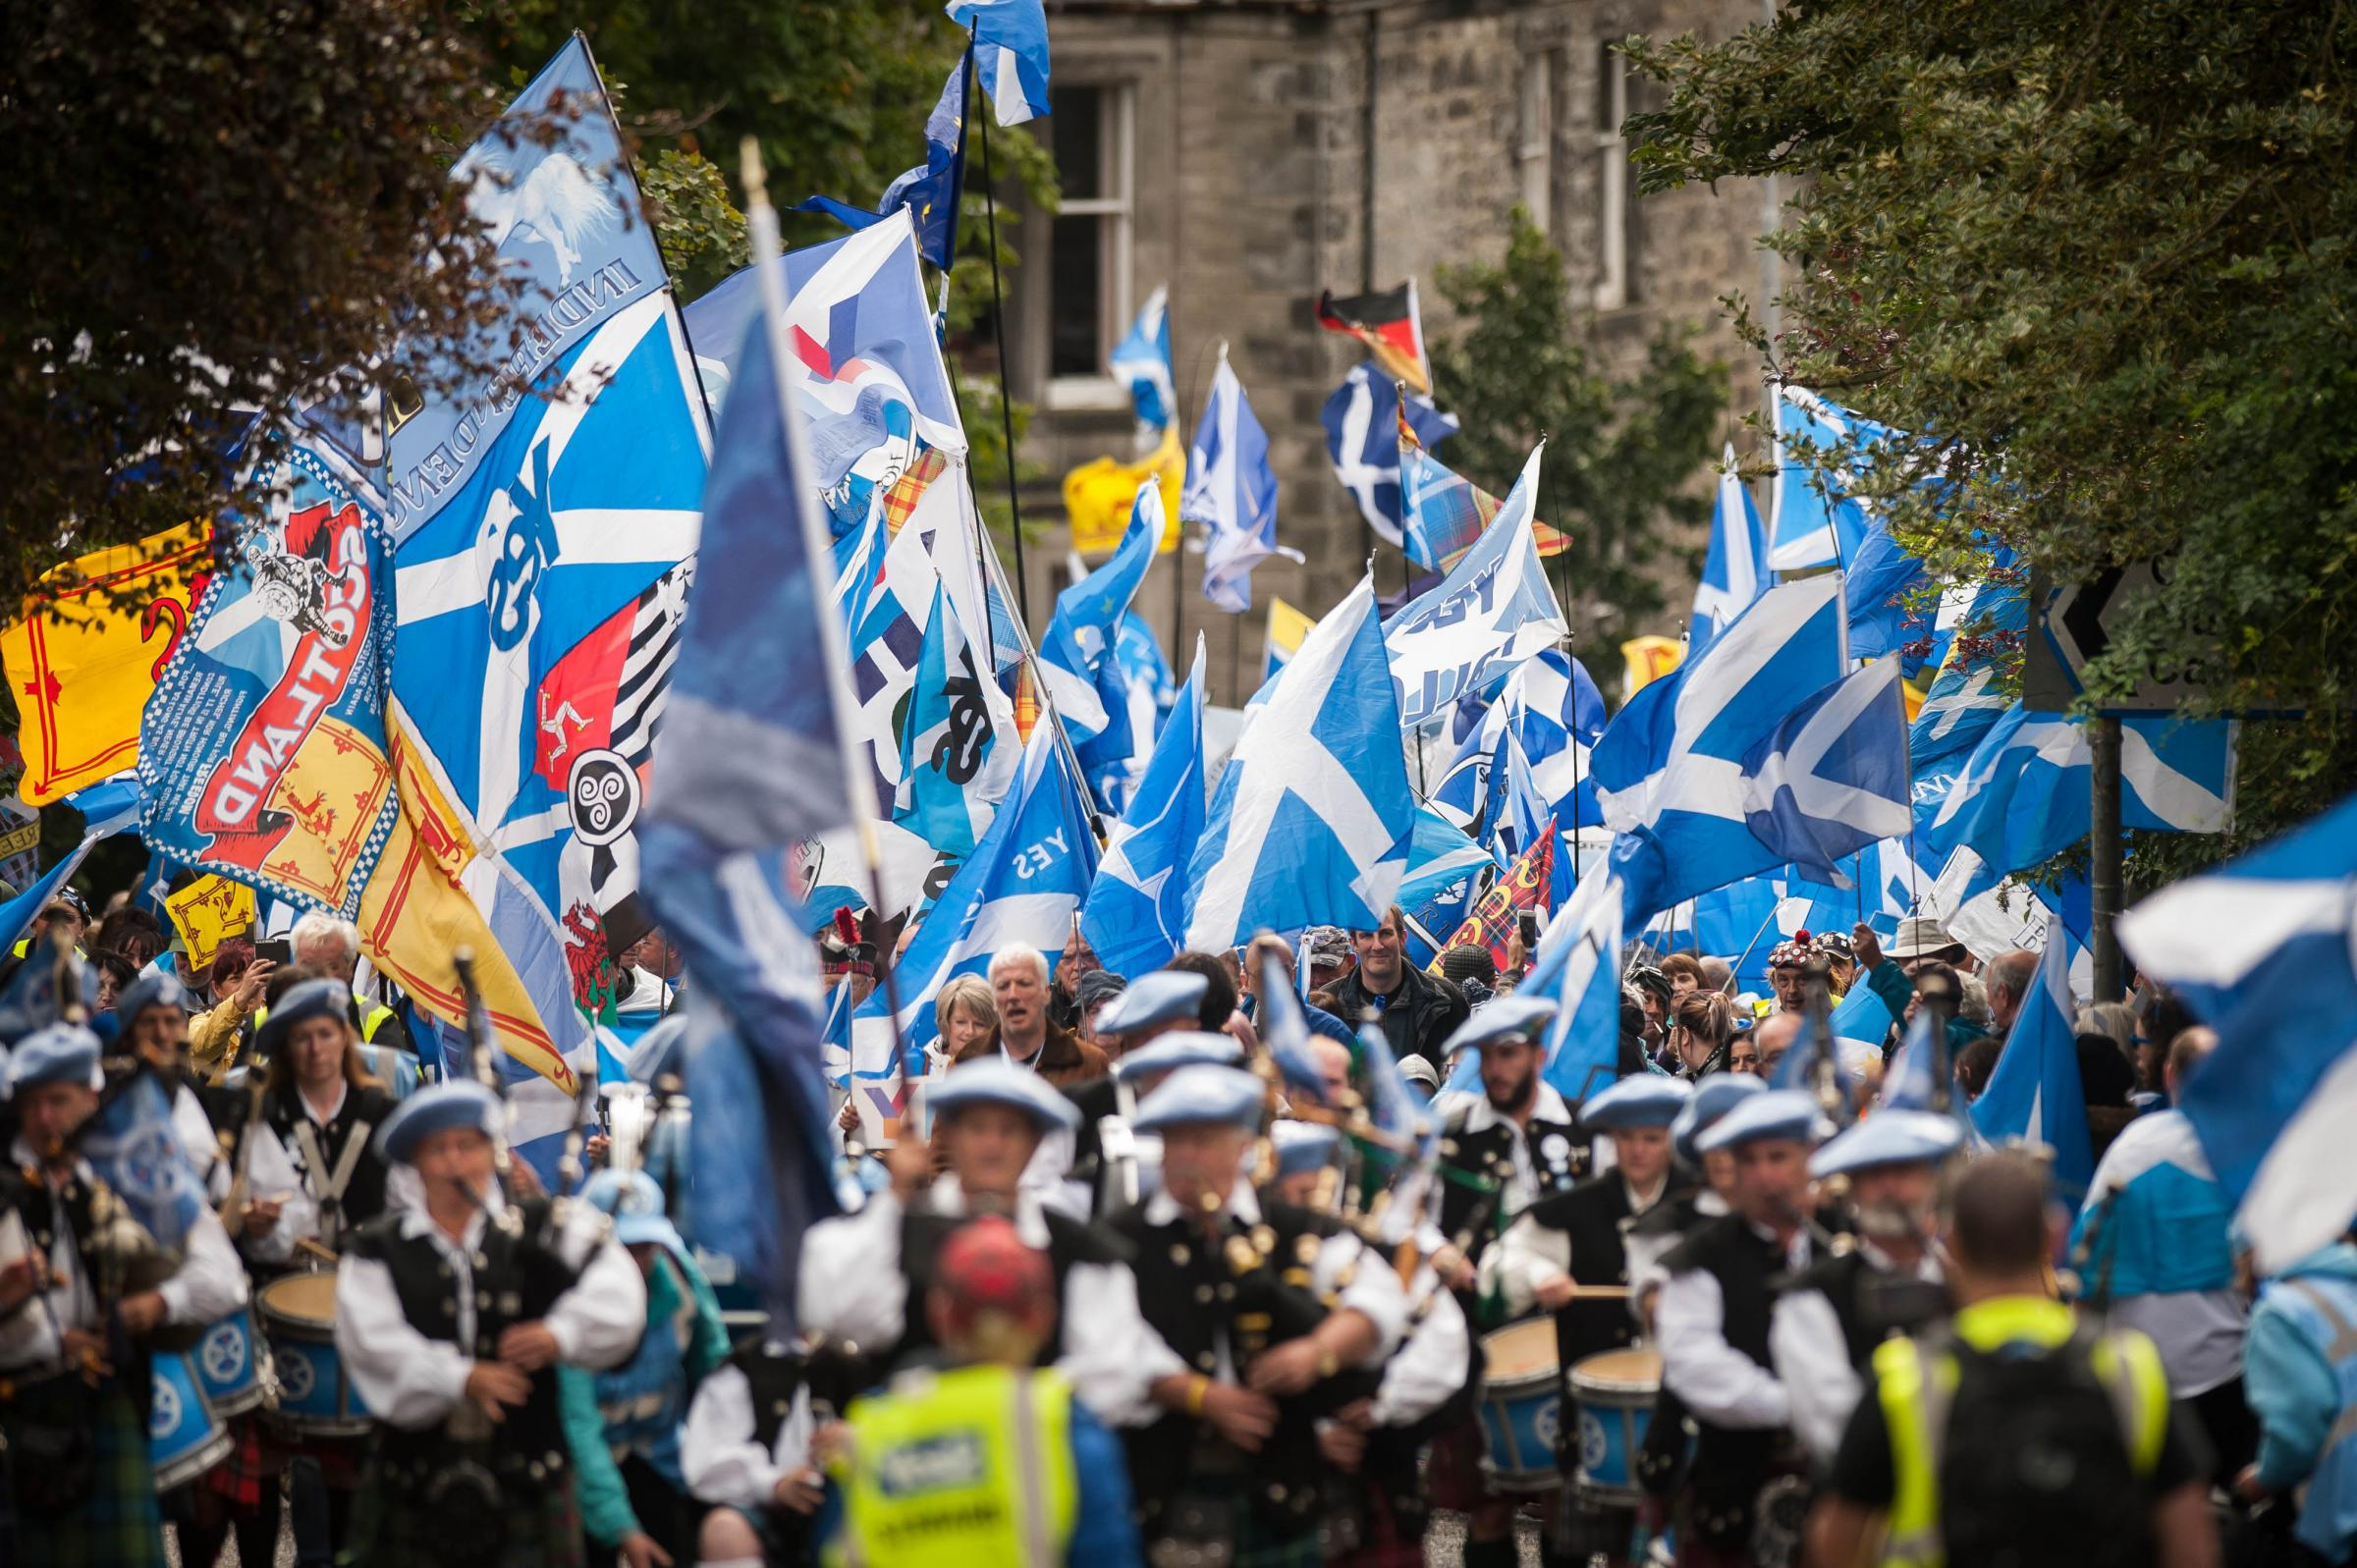 Forward As One brings thousands to Dunfermline march